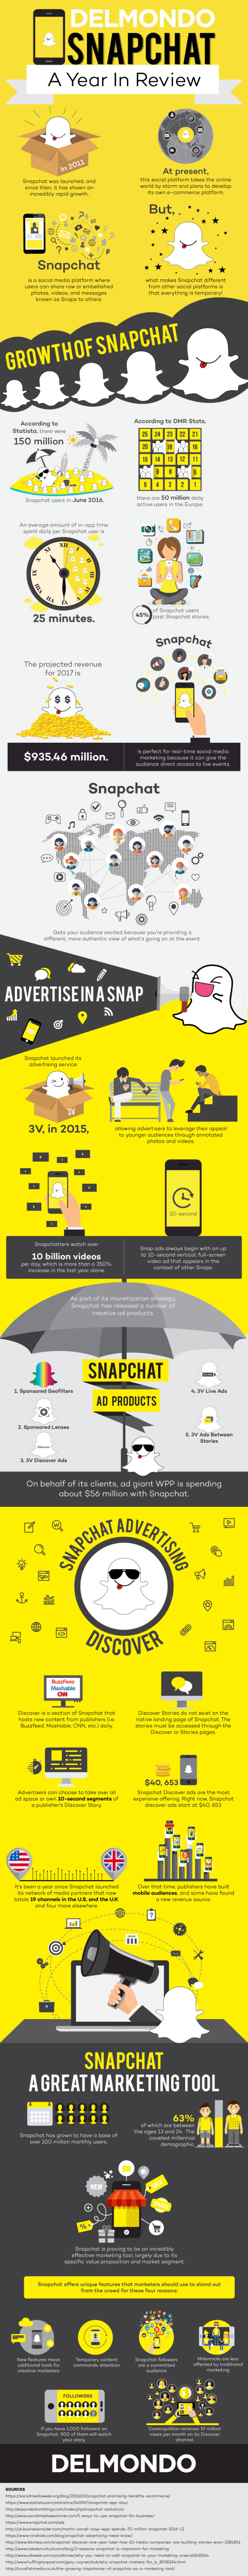 chiffres snapchat infographie